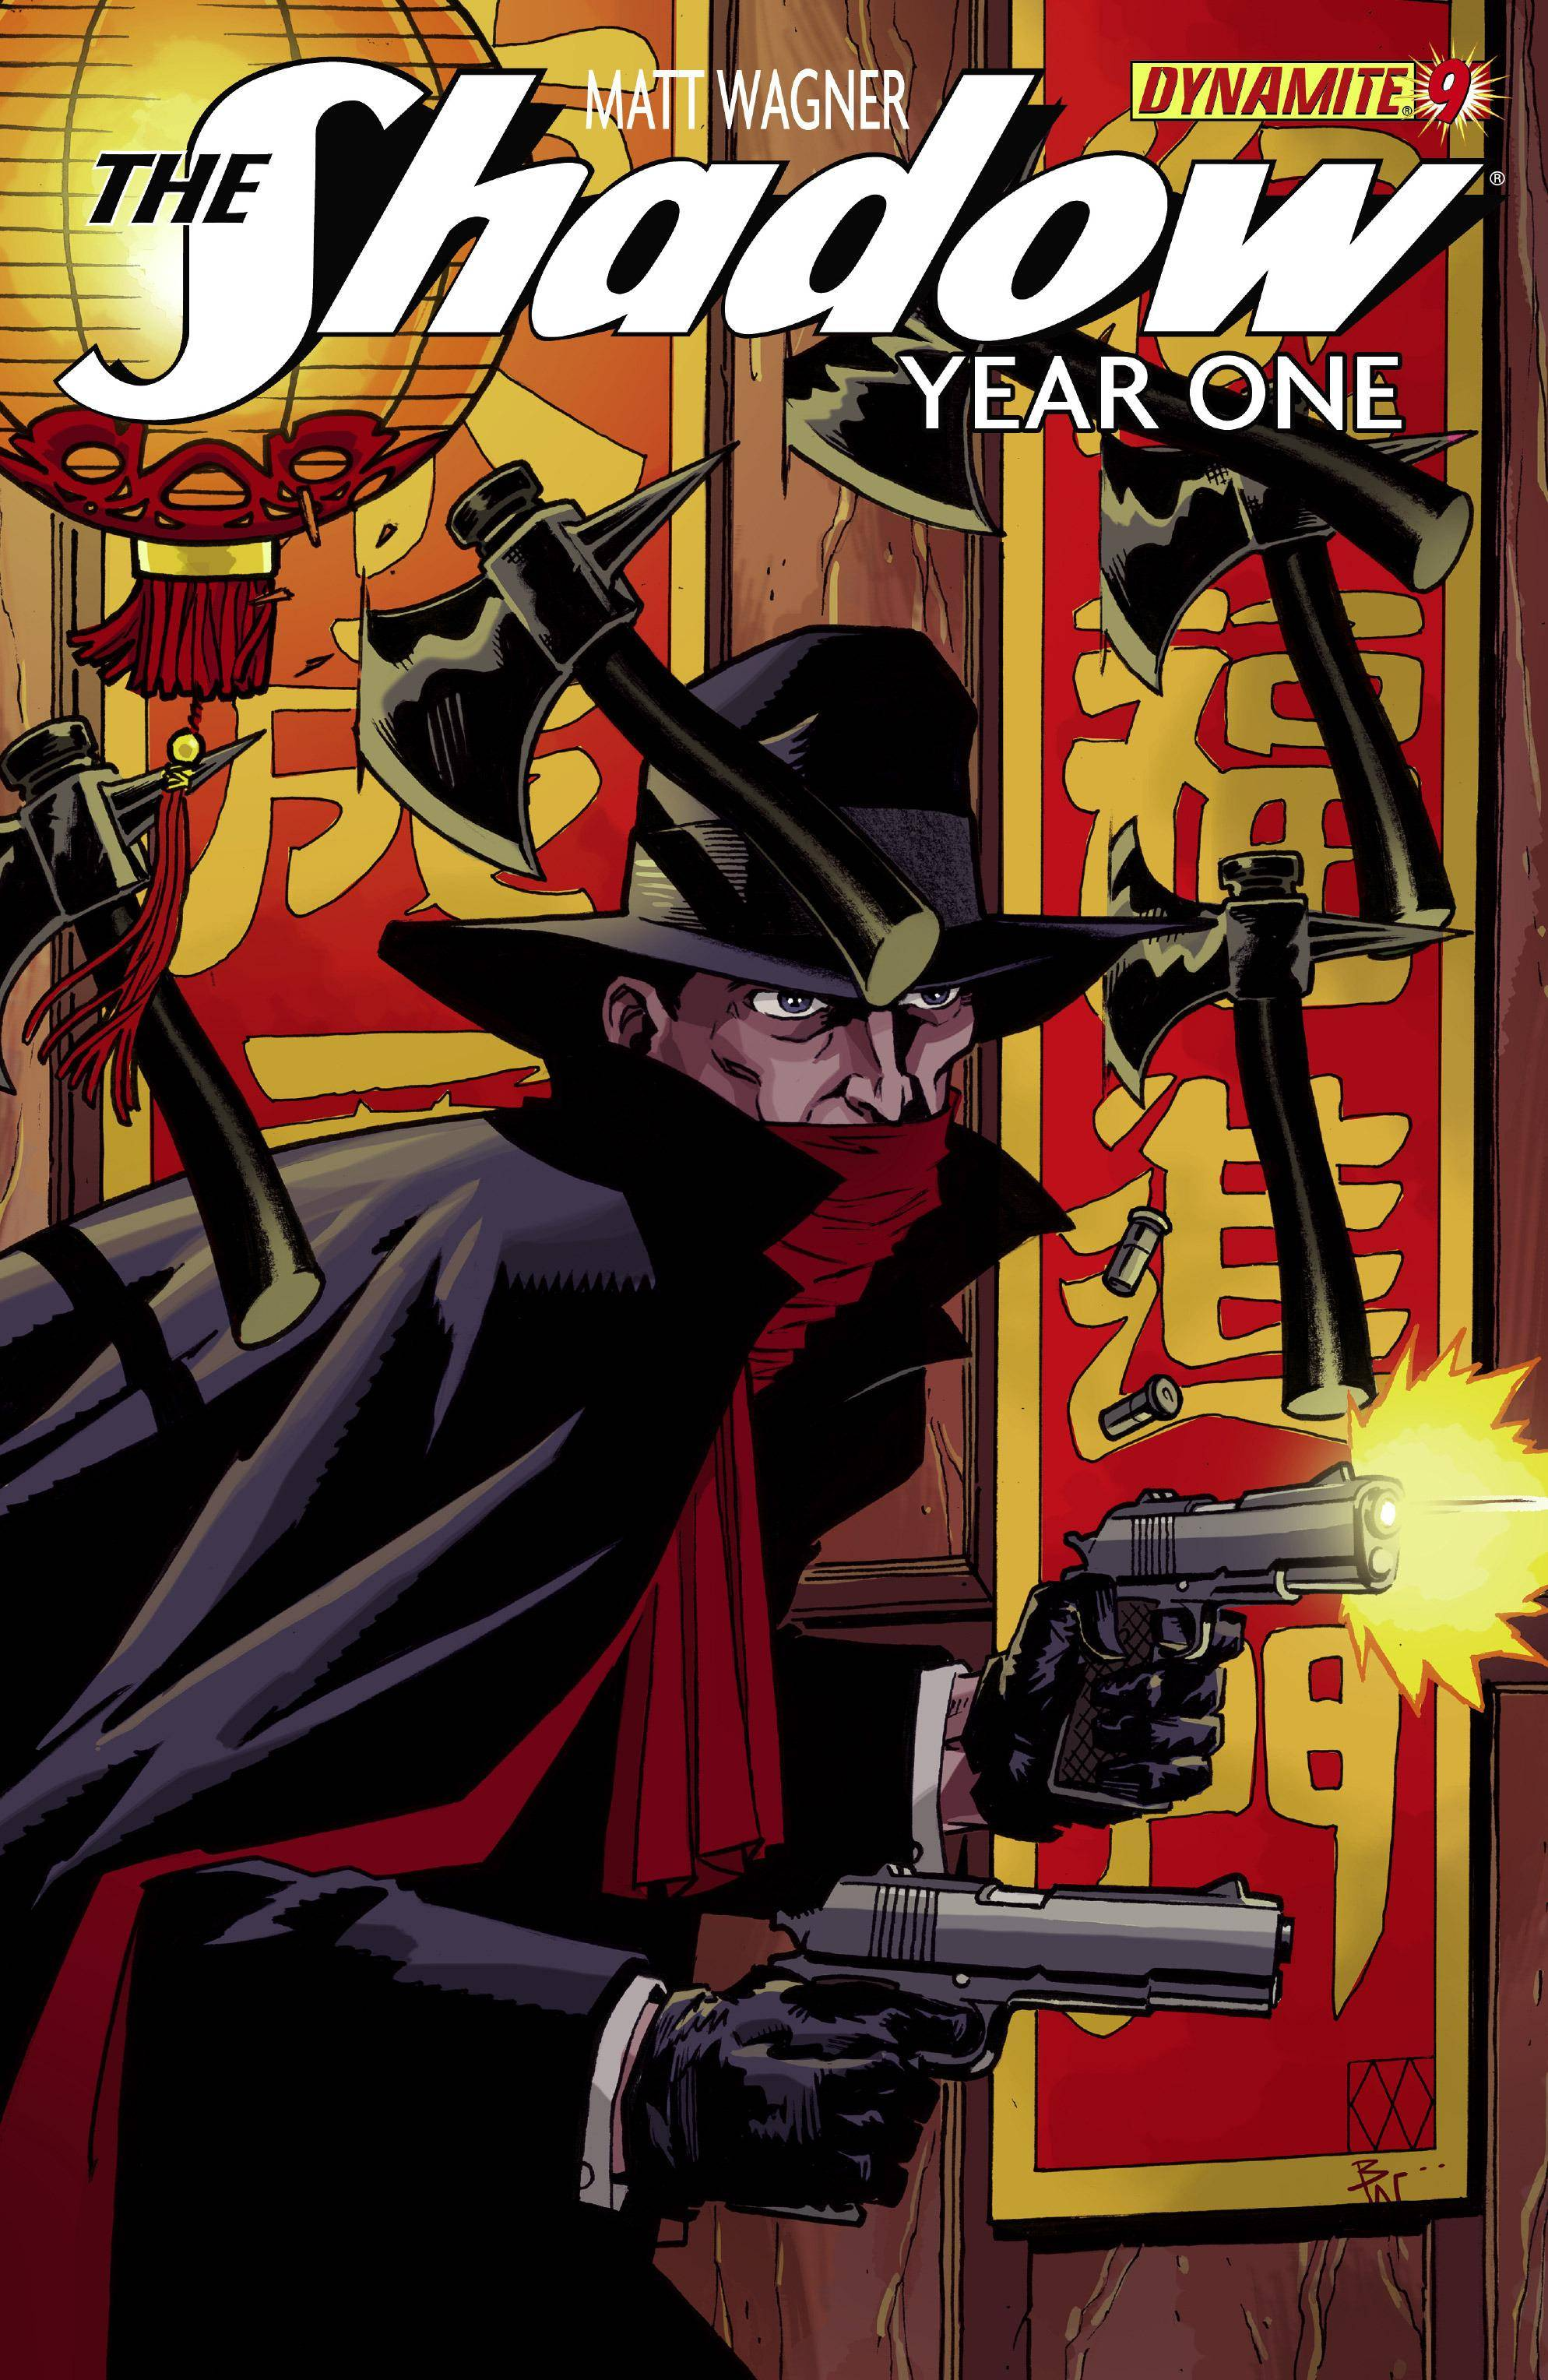 The Shadow - Year One 09 (of 10) (2014) (4 Covers) (Digital) (Darkness-Empire)